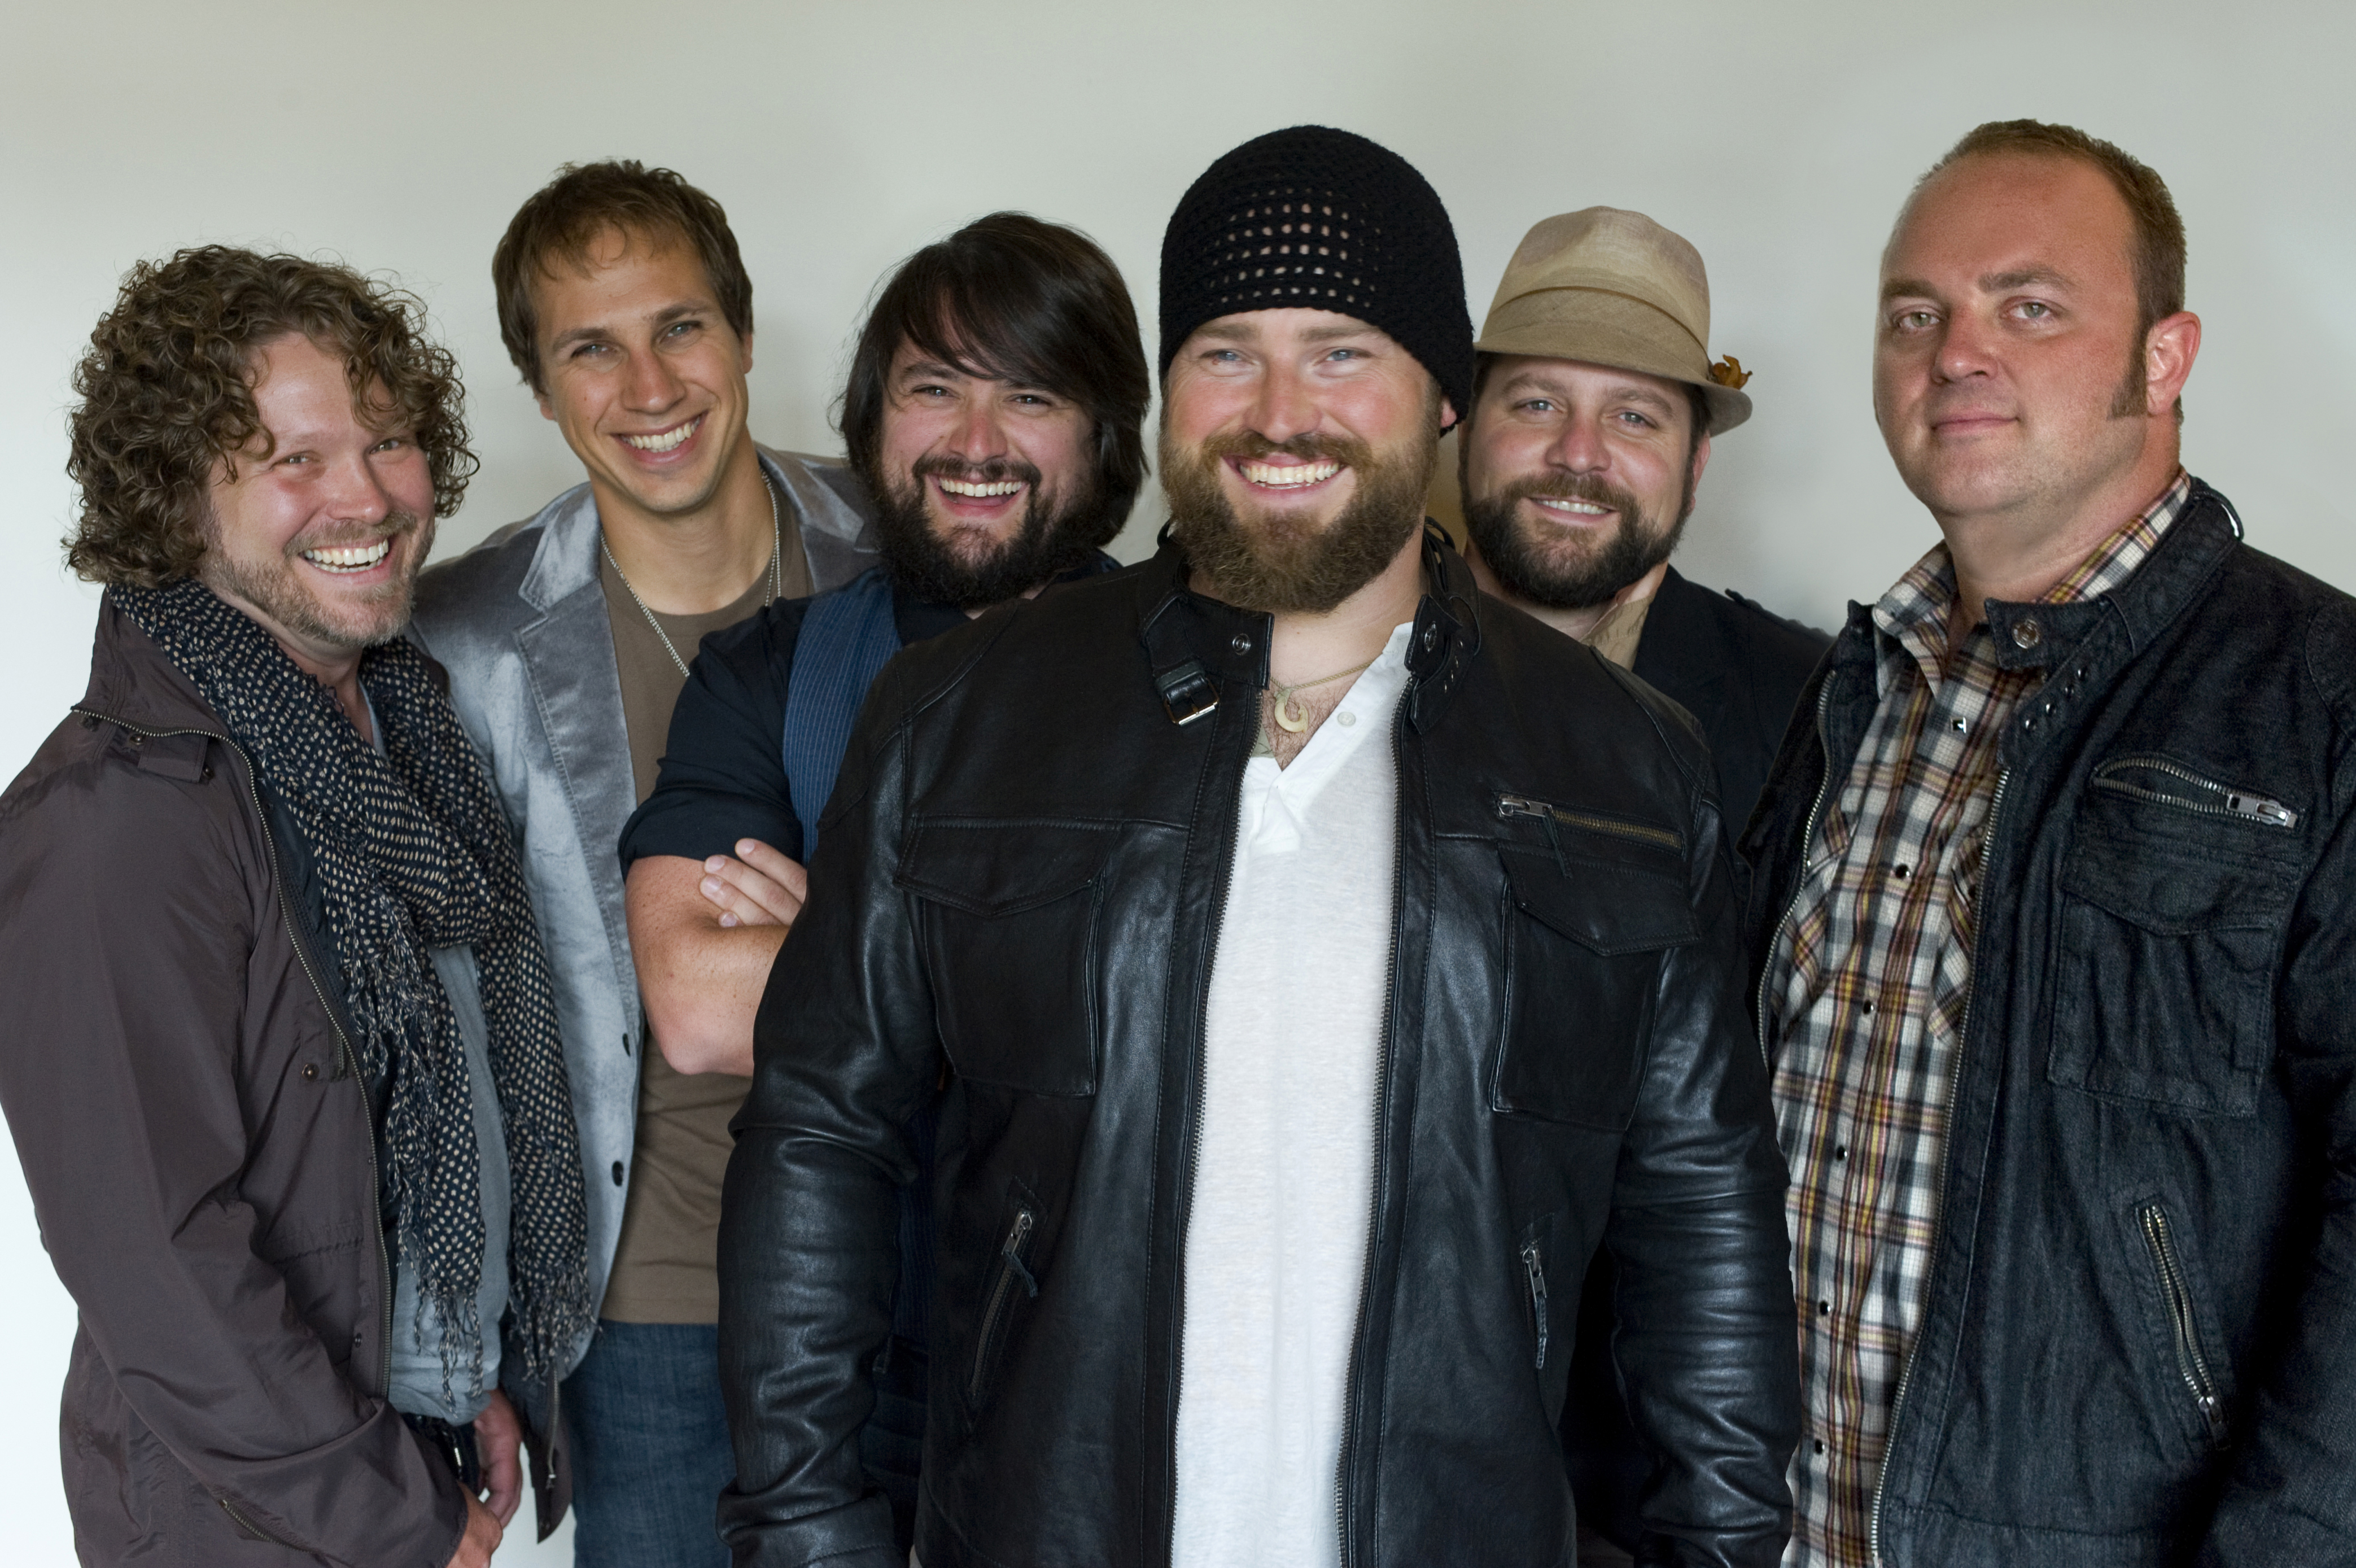 Charitybuzz 2 tickets and an eat and greet with the zac brown detail m4hsunfo